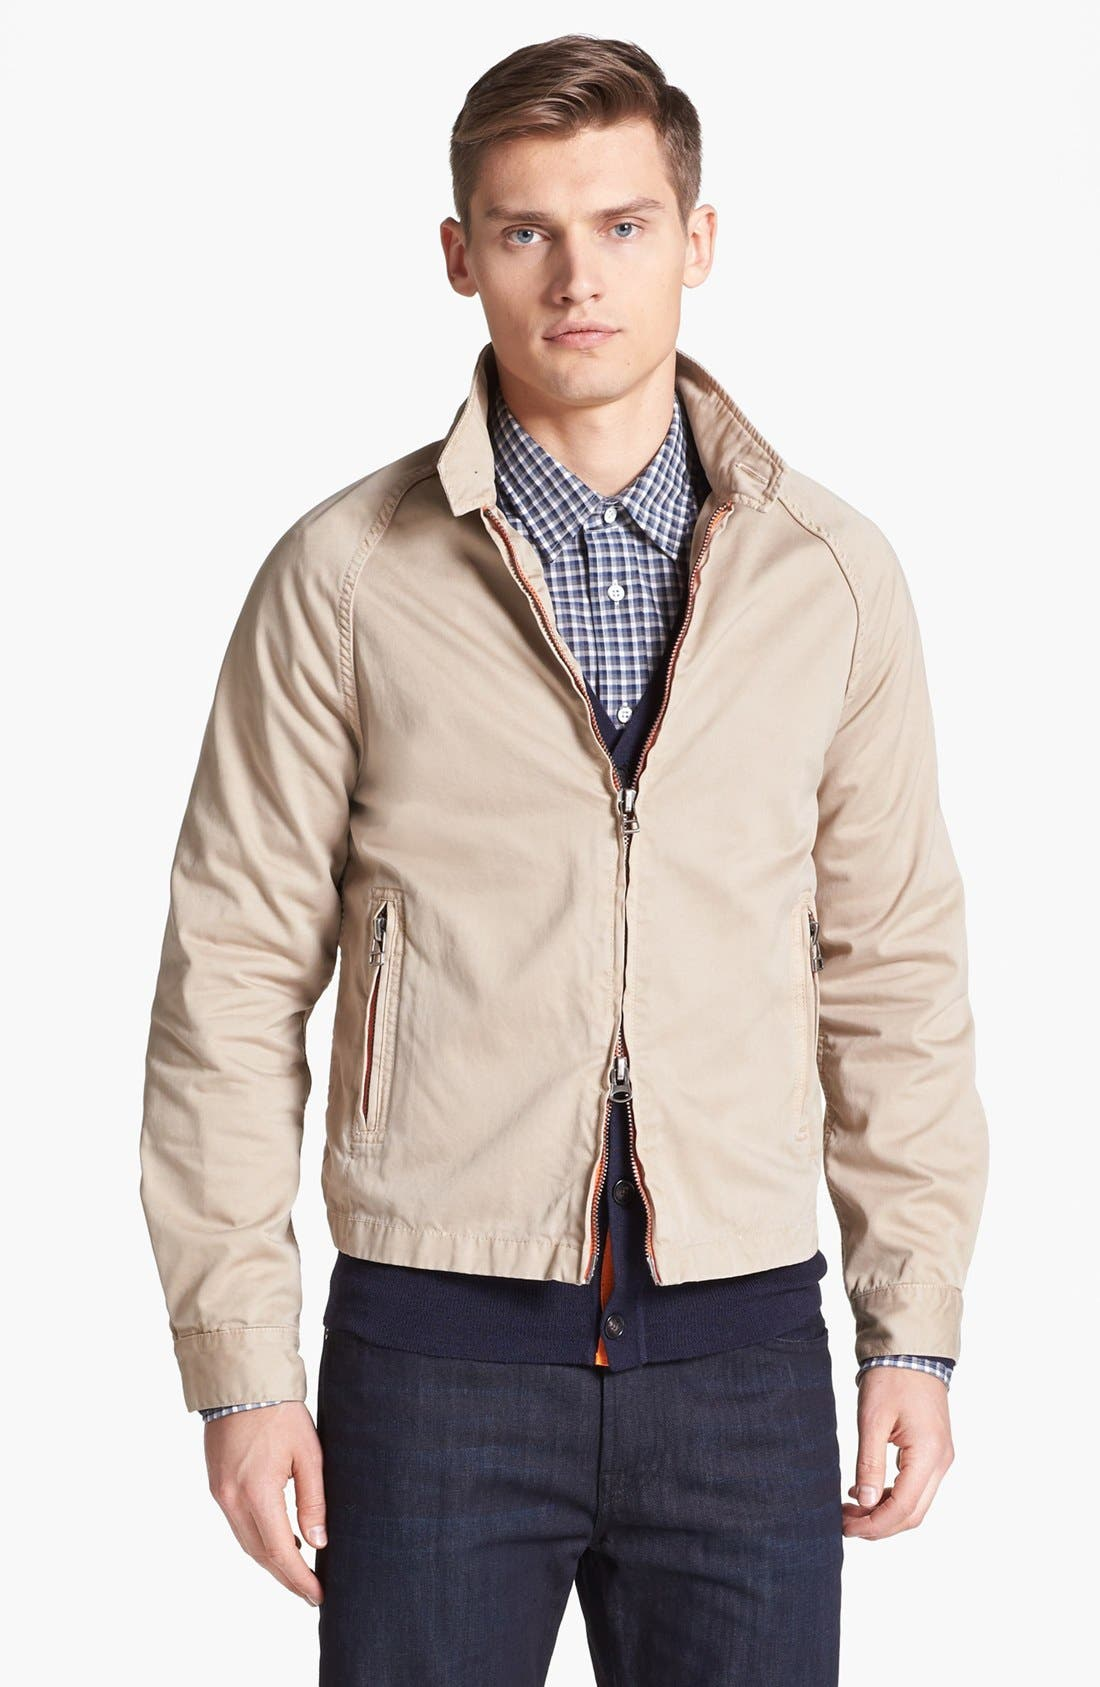 Alternate Image 1 Selected - Jack Spade 'Wilcox' Jacket